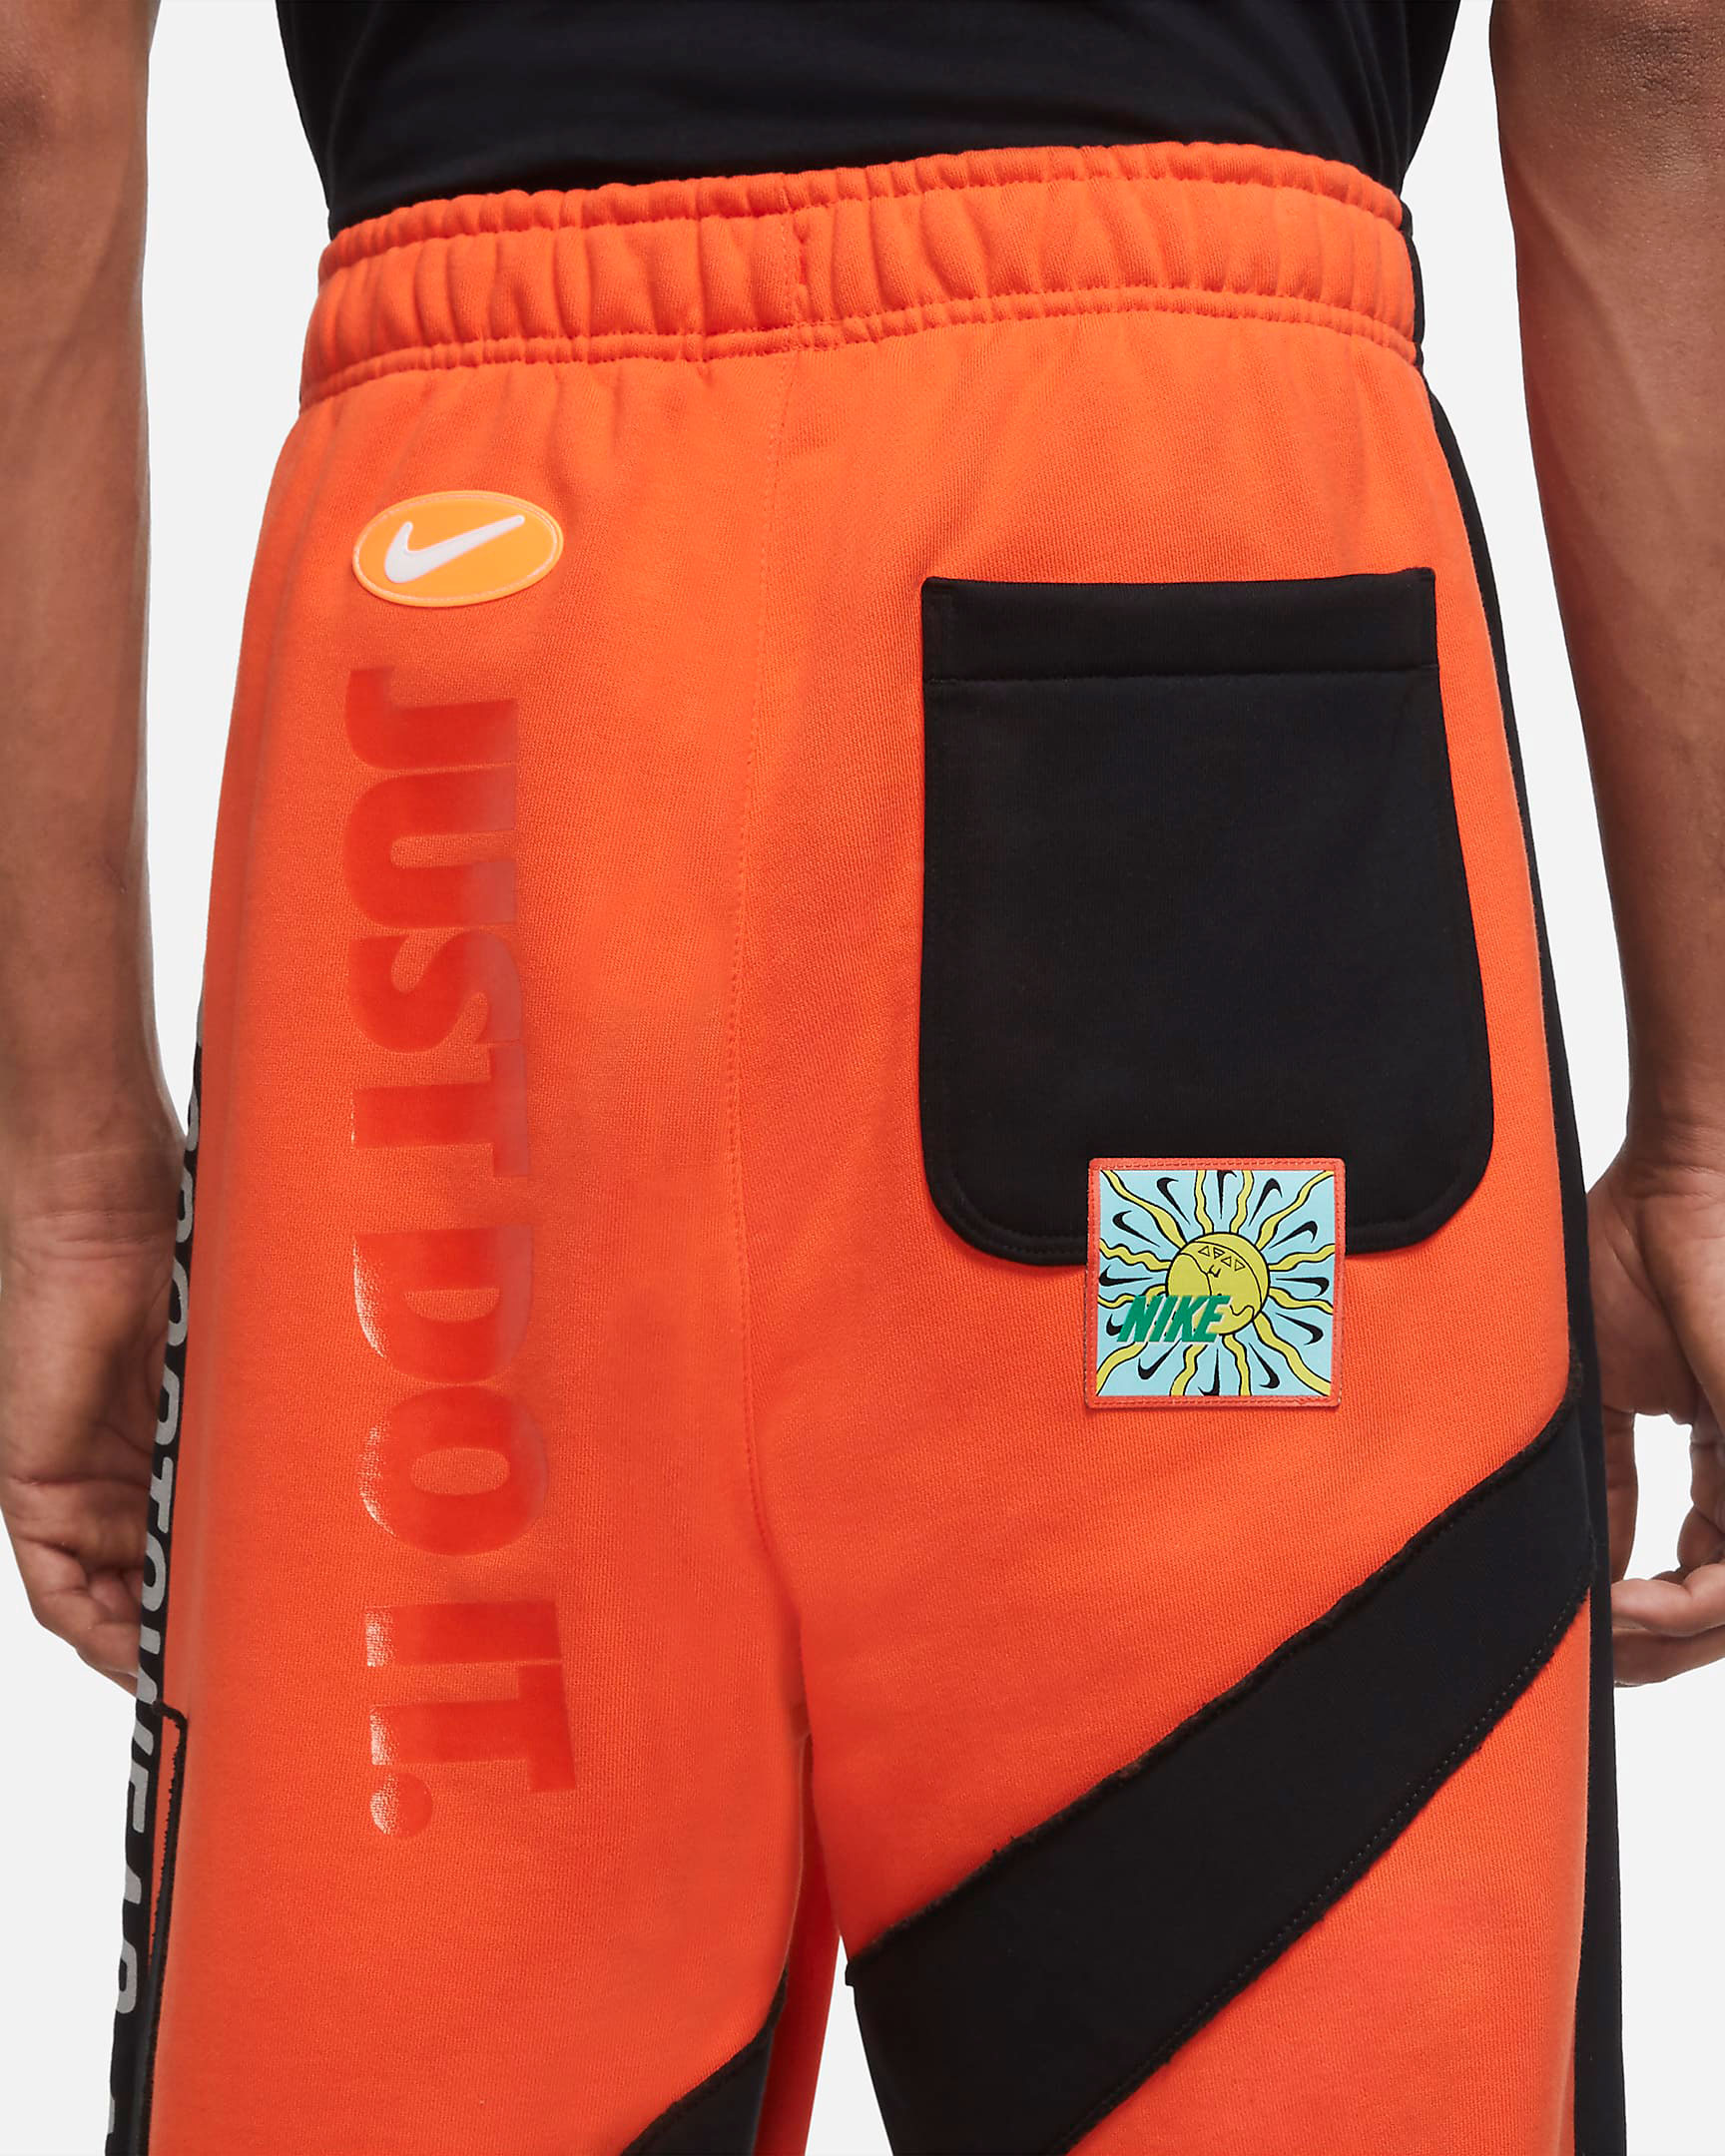 nike-air-max-drip-jogger-pants-orange-4